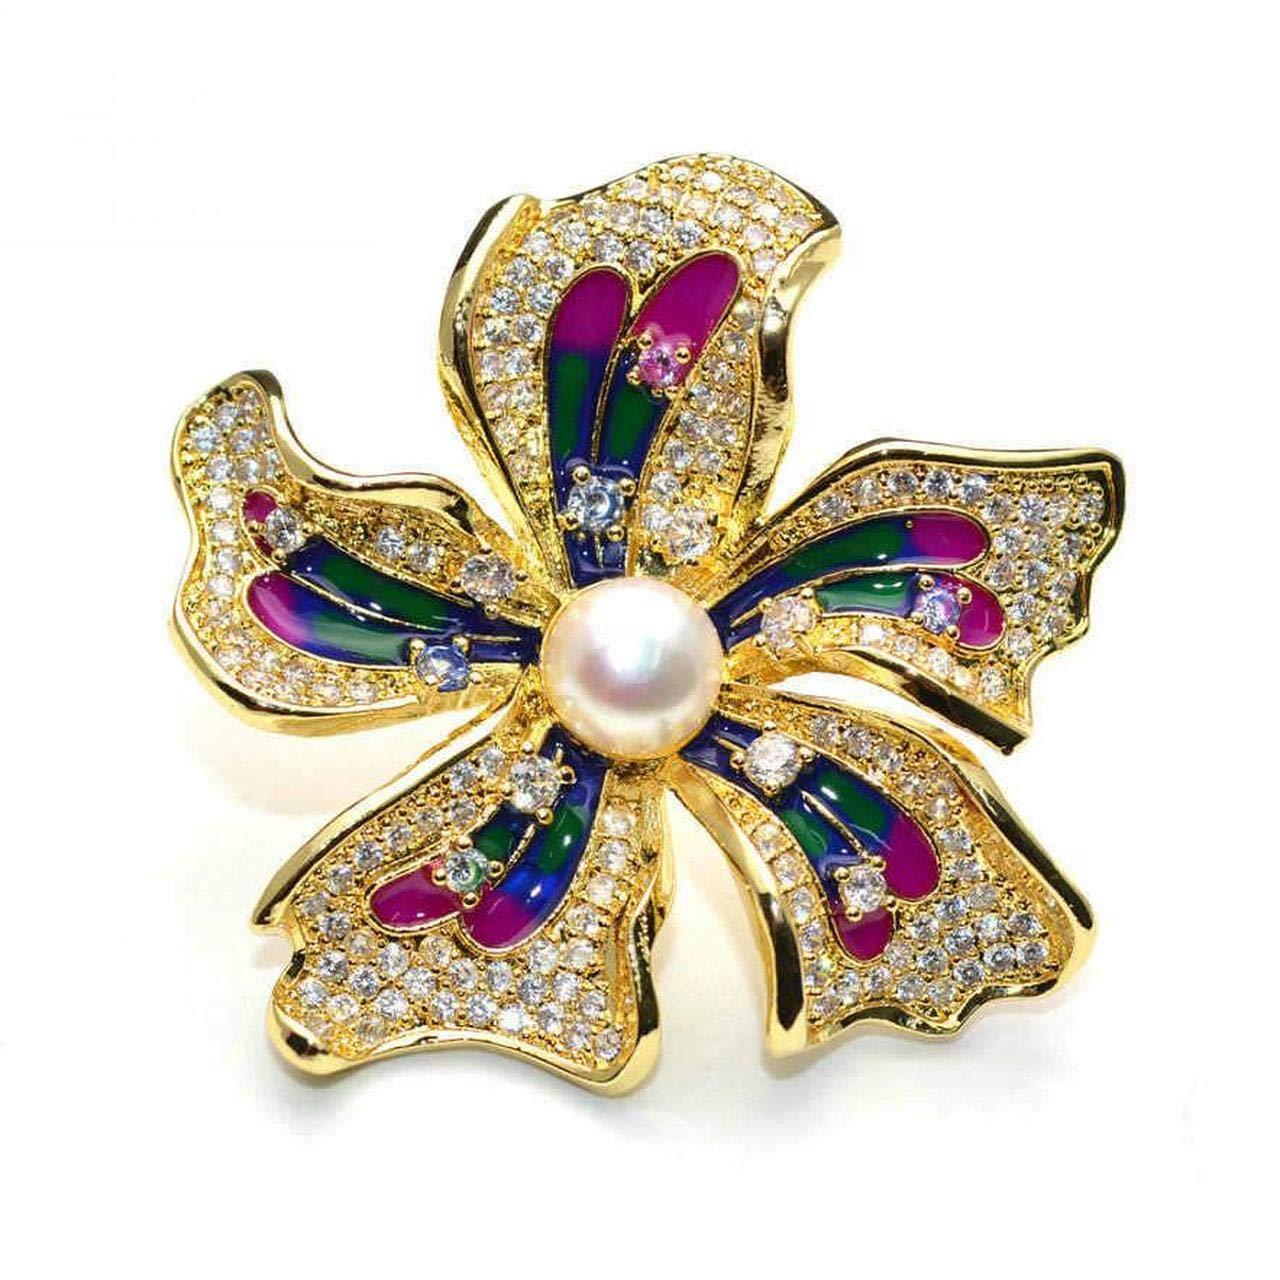 Chinese Redbud Flower Shape Brooches Brooch Pin Badge Emblem Corsage Freshwater Pearls /& Rhinestone Setting Jewelry Fashion Women Girl Party Gift